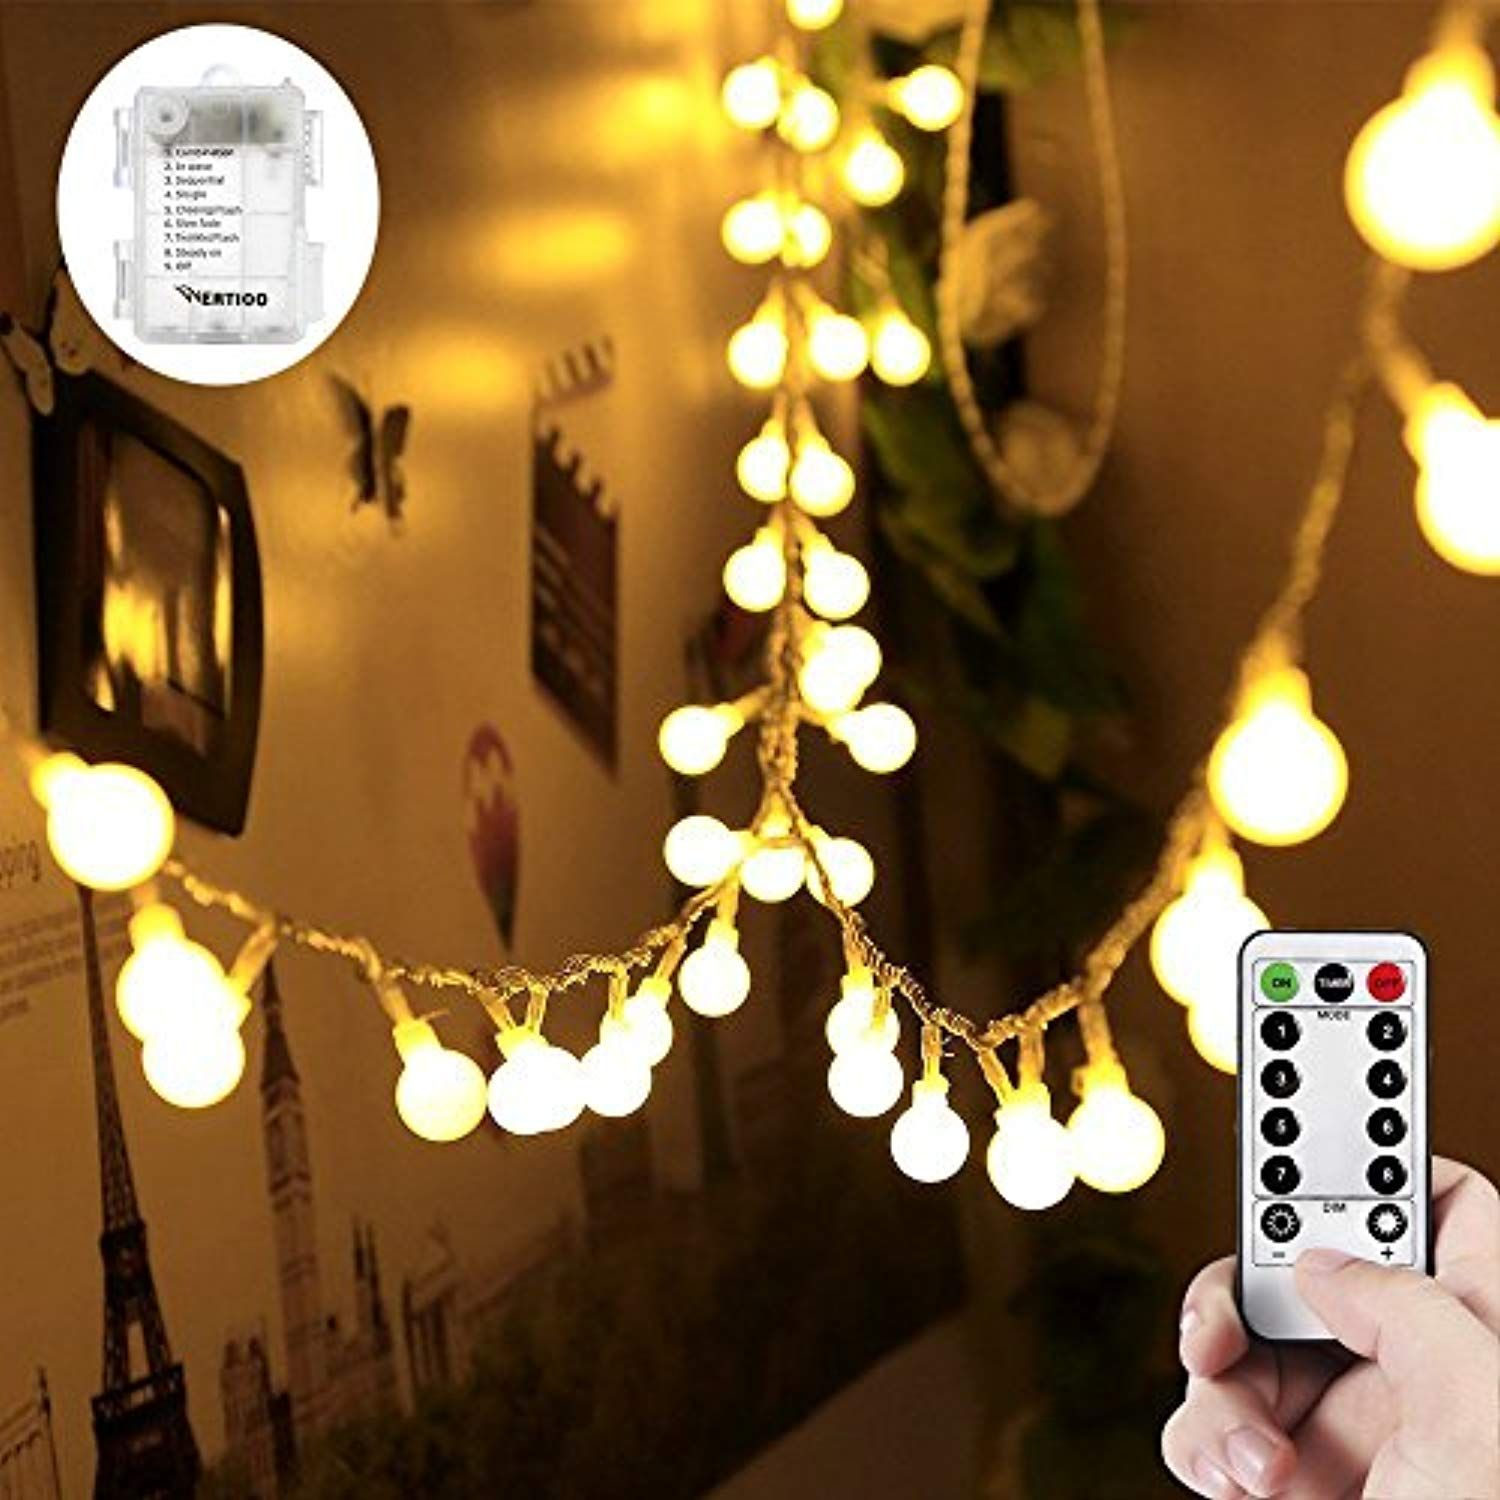 Wertioo 33ft 100 Leds Battery Operated String Lights Globe Fairy